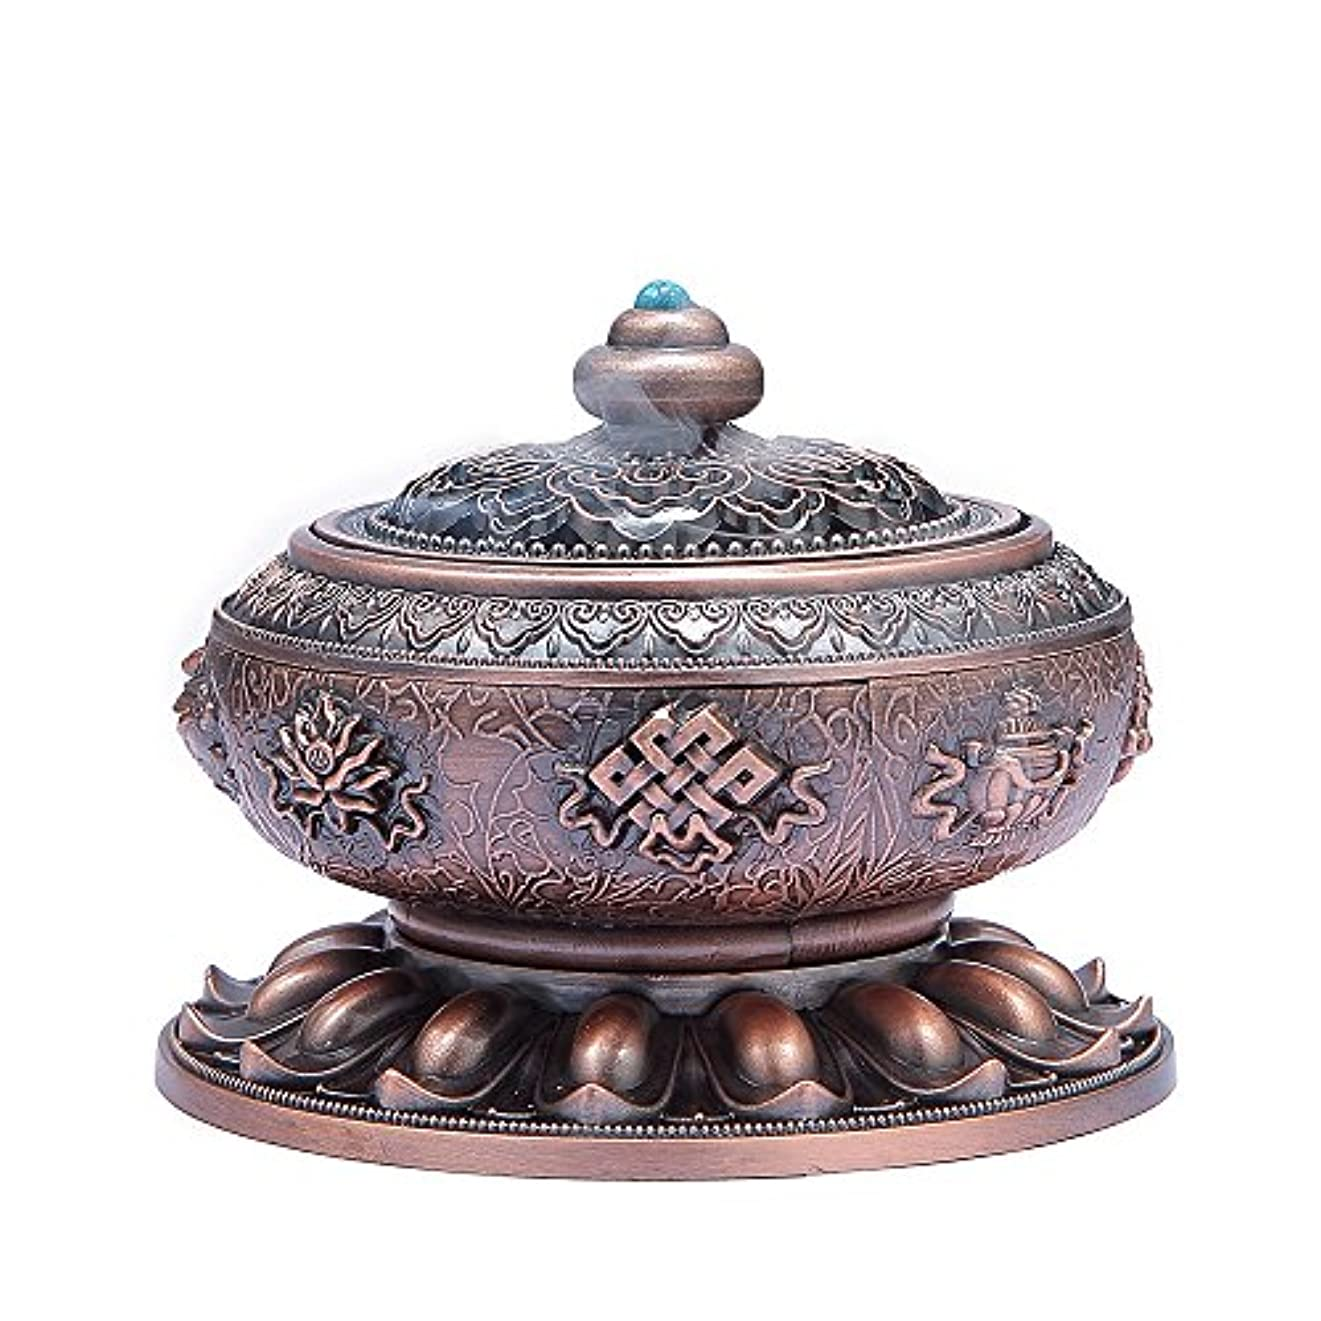 震える意味のあるビールMEDOOSKY Large Incense Holder Burner Tibet Lotus Copper Alloy( Stick/ Cone/ Coil Incense)